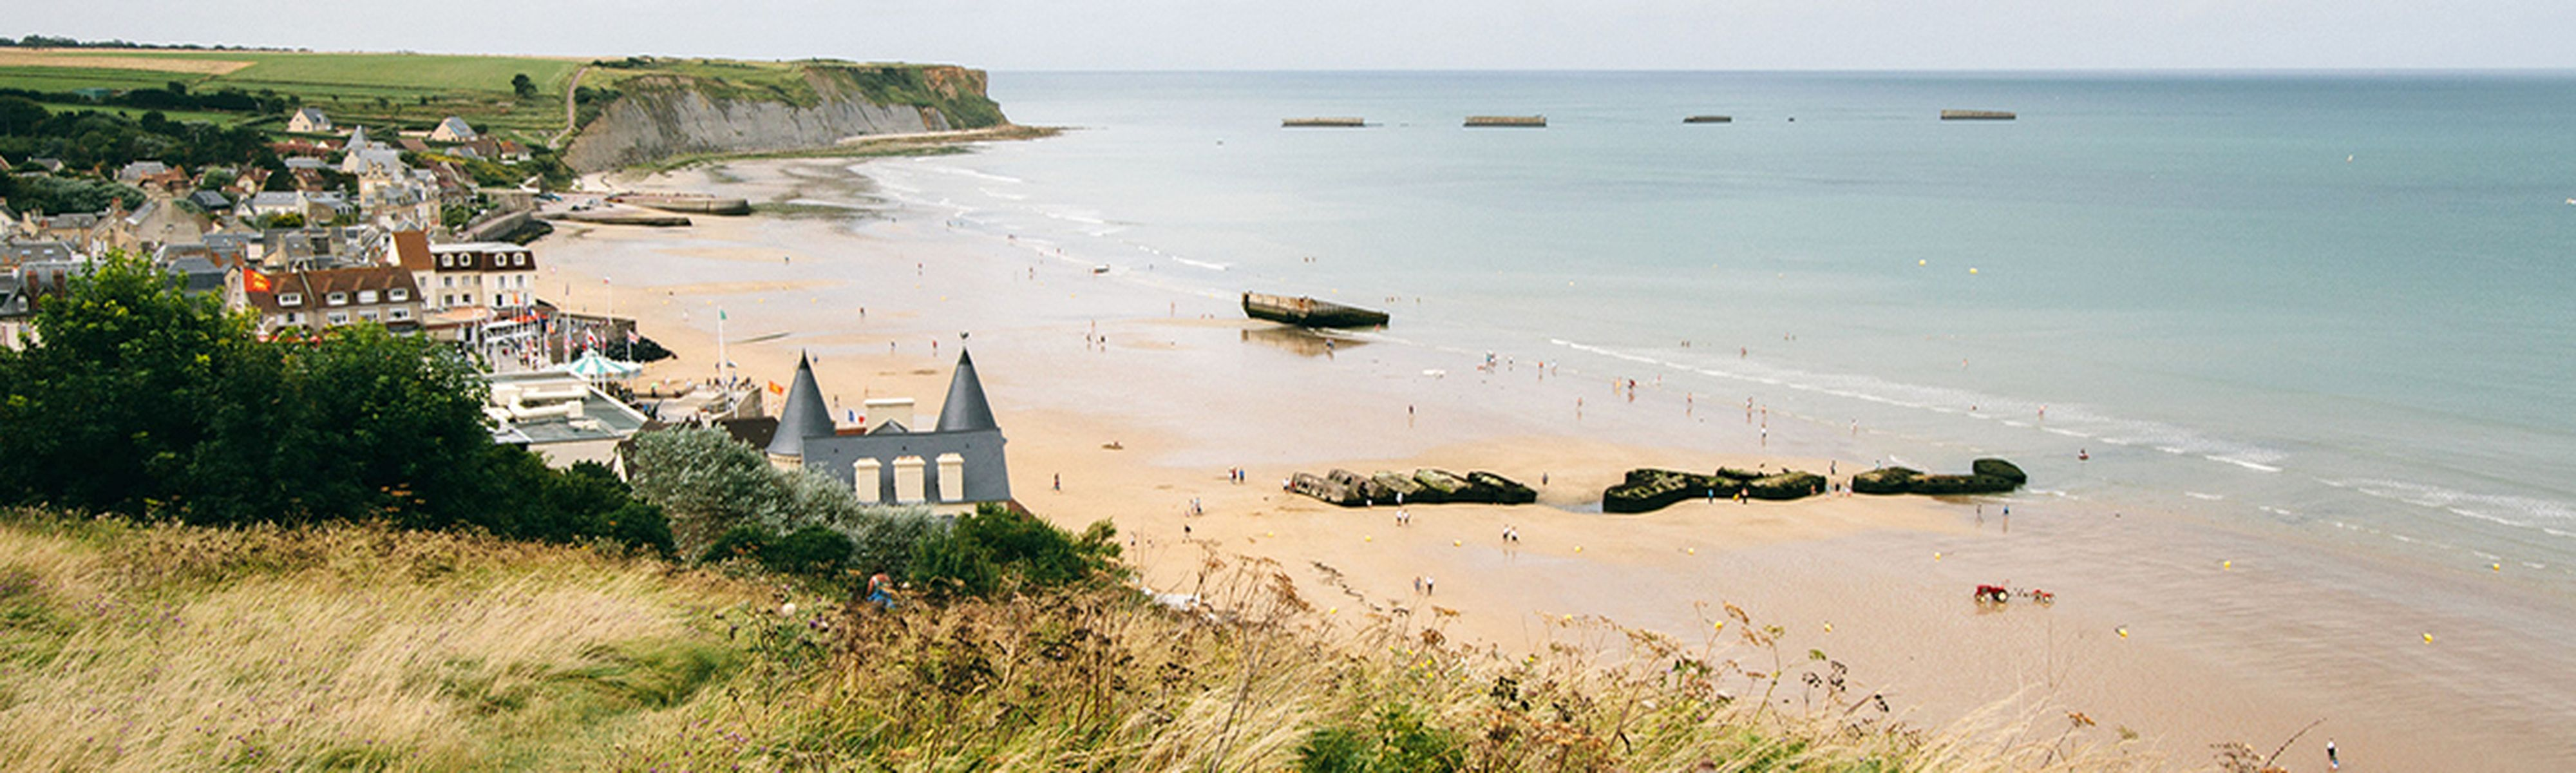 Normandy Landings in Normandy, France